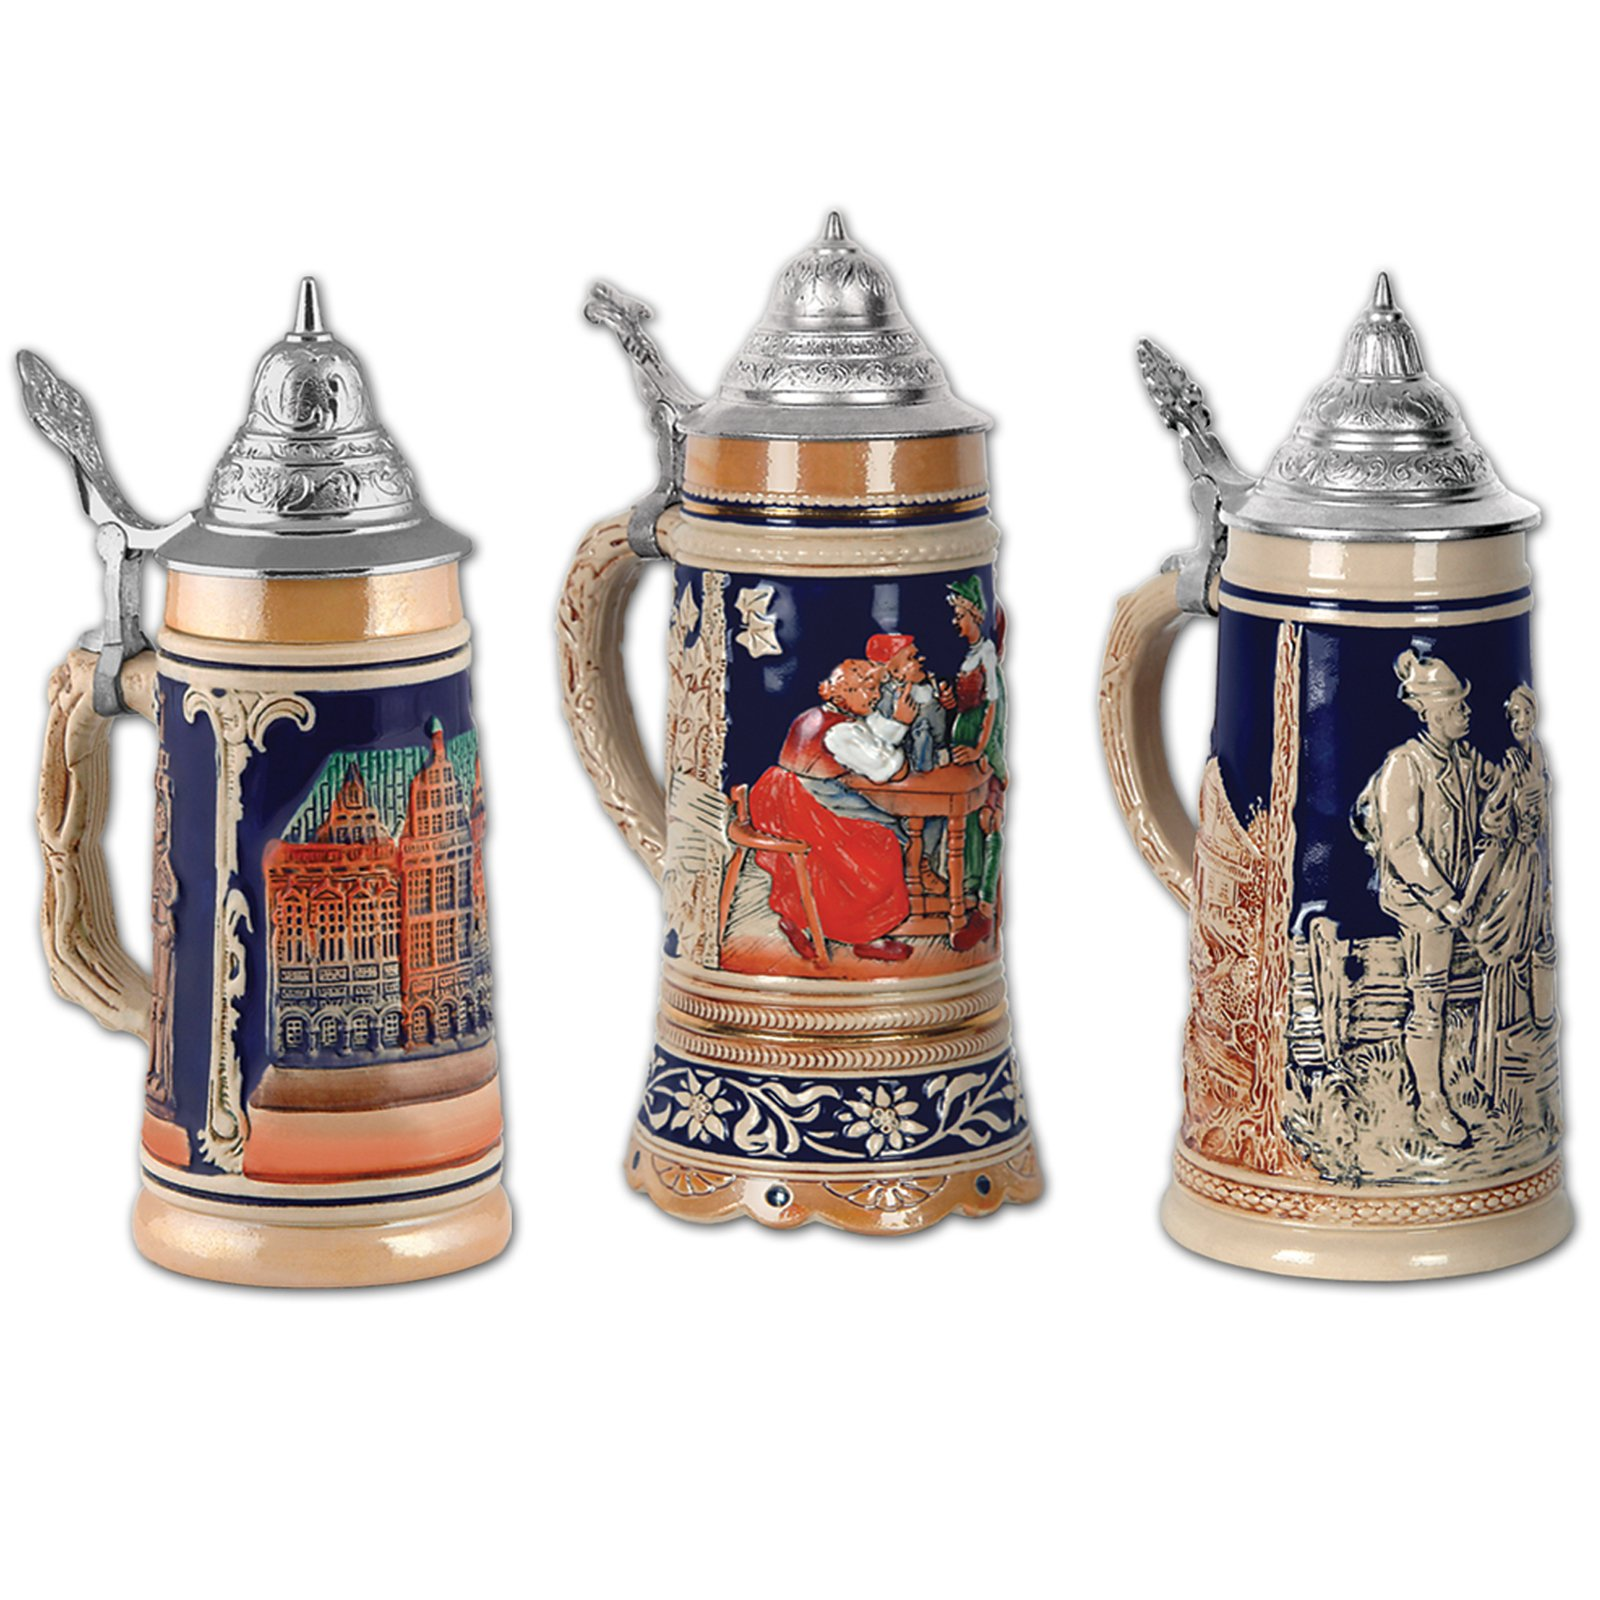 Beer Stein Cutouts (3 count)